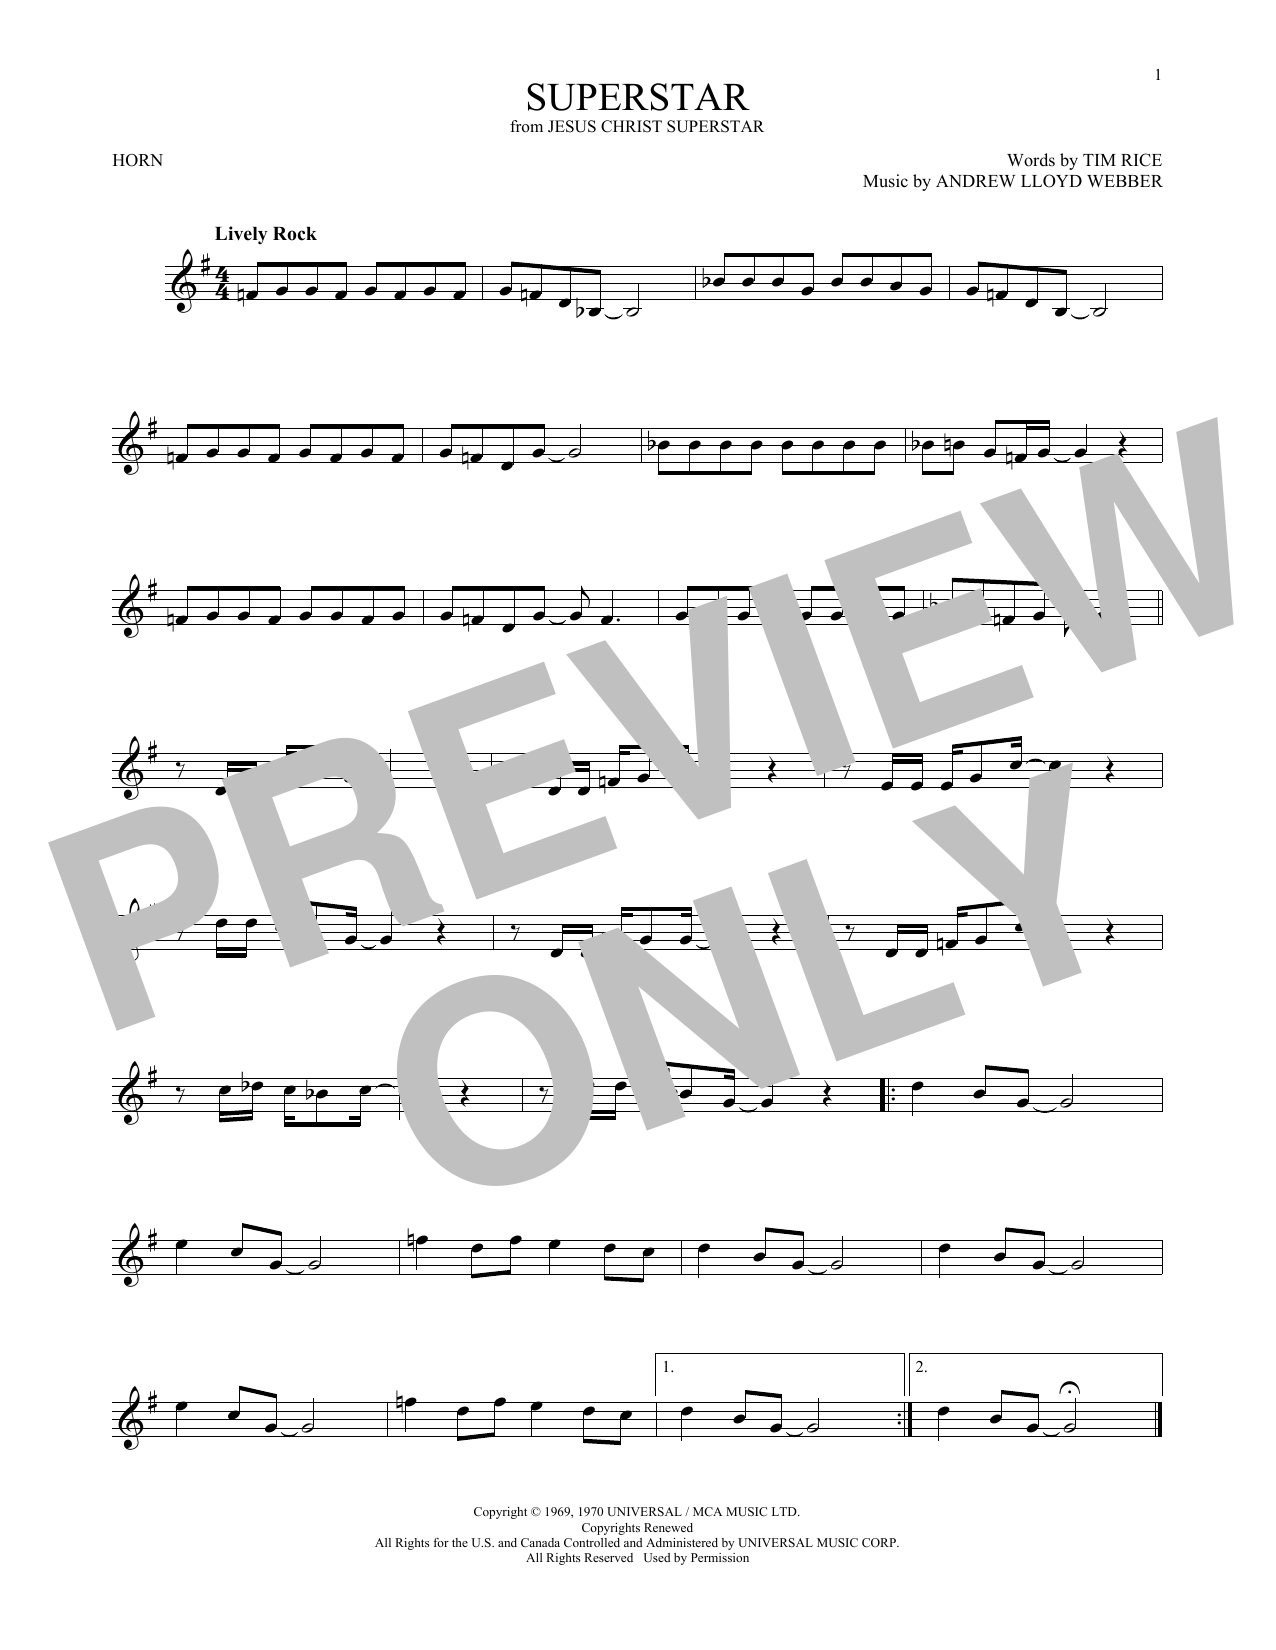 Superstar (from Jesus Christ Superstar) (French Horn Solo)